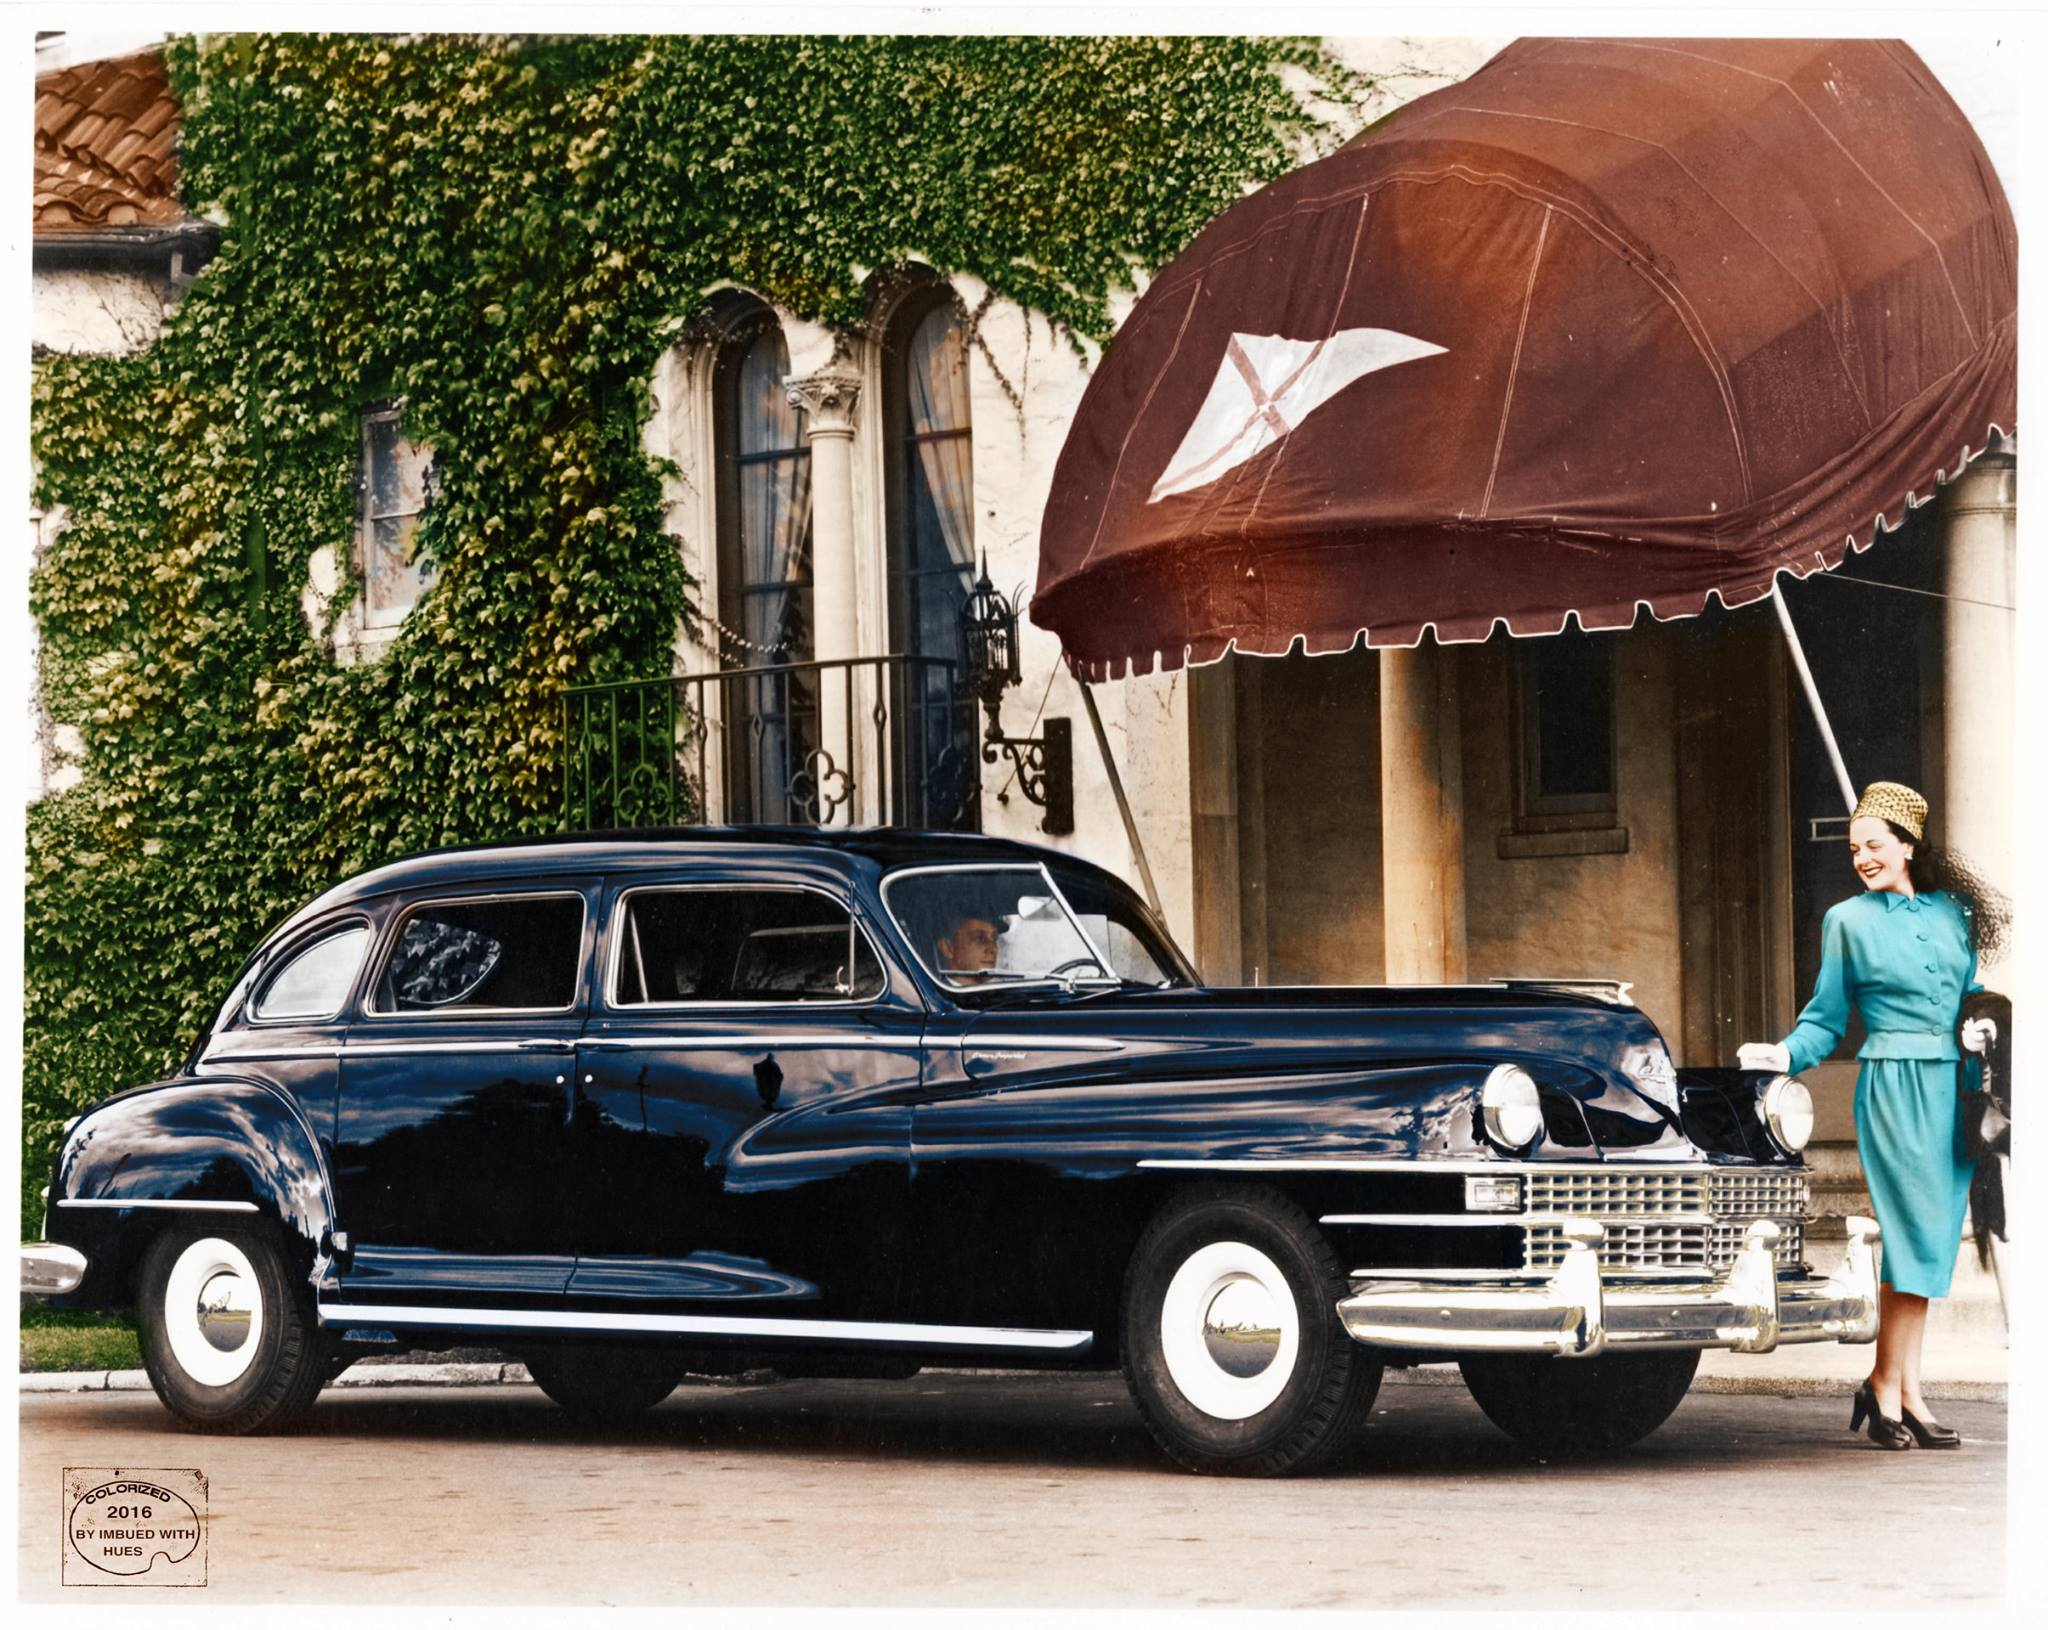 1948 Chrysler Crown Imperial Limousine ретро автомобили, ретро фото, фотографии